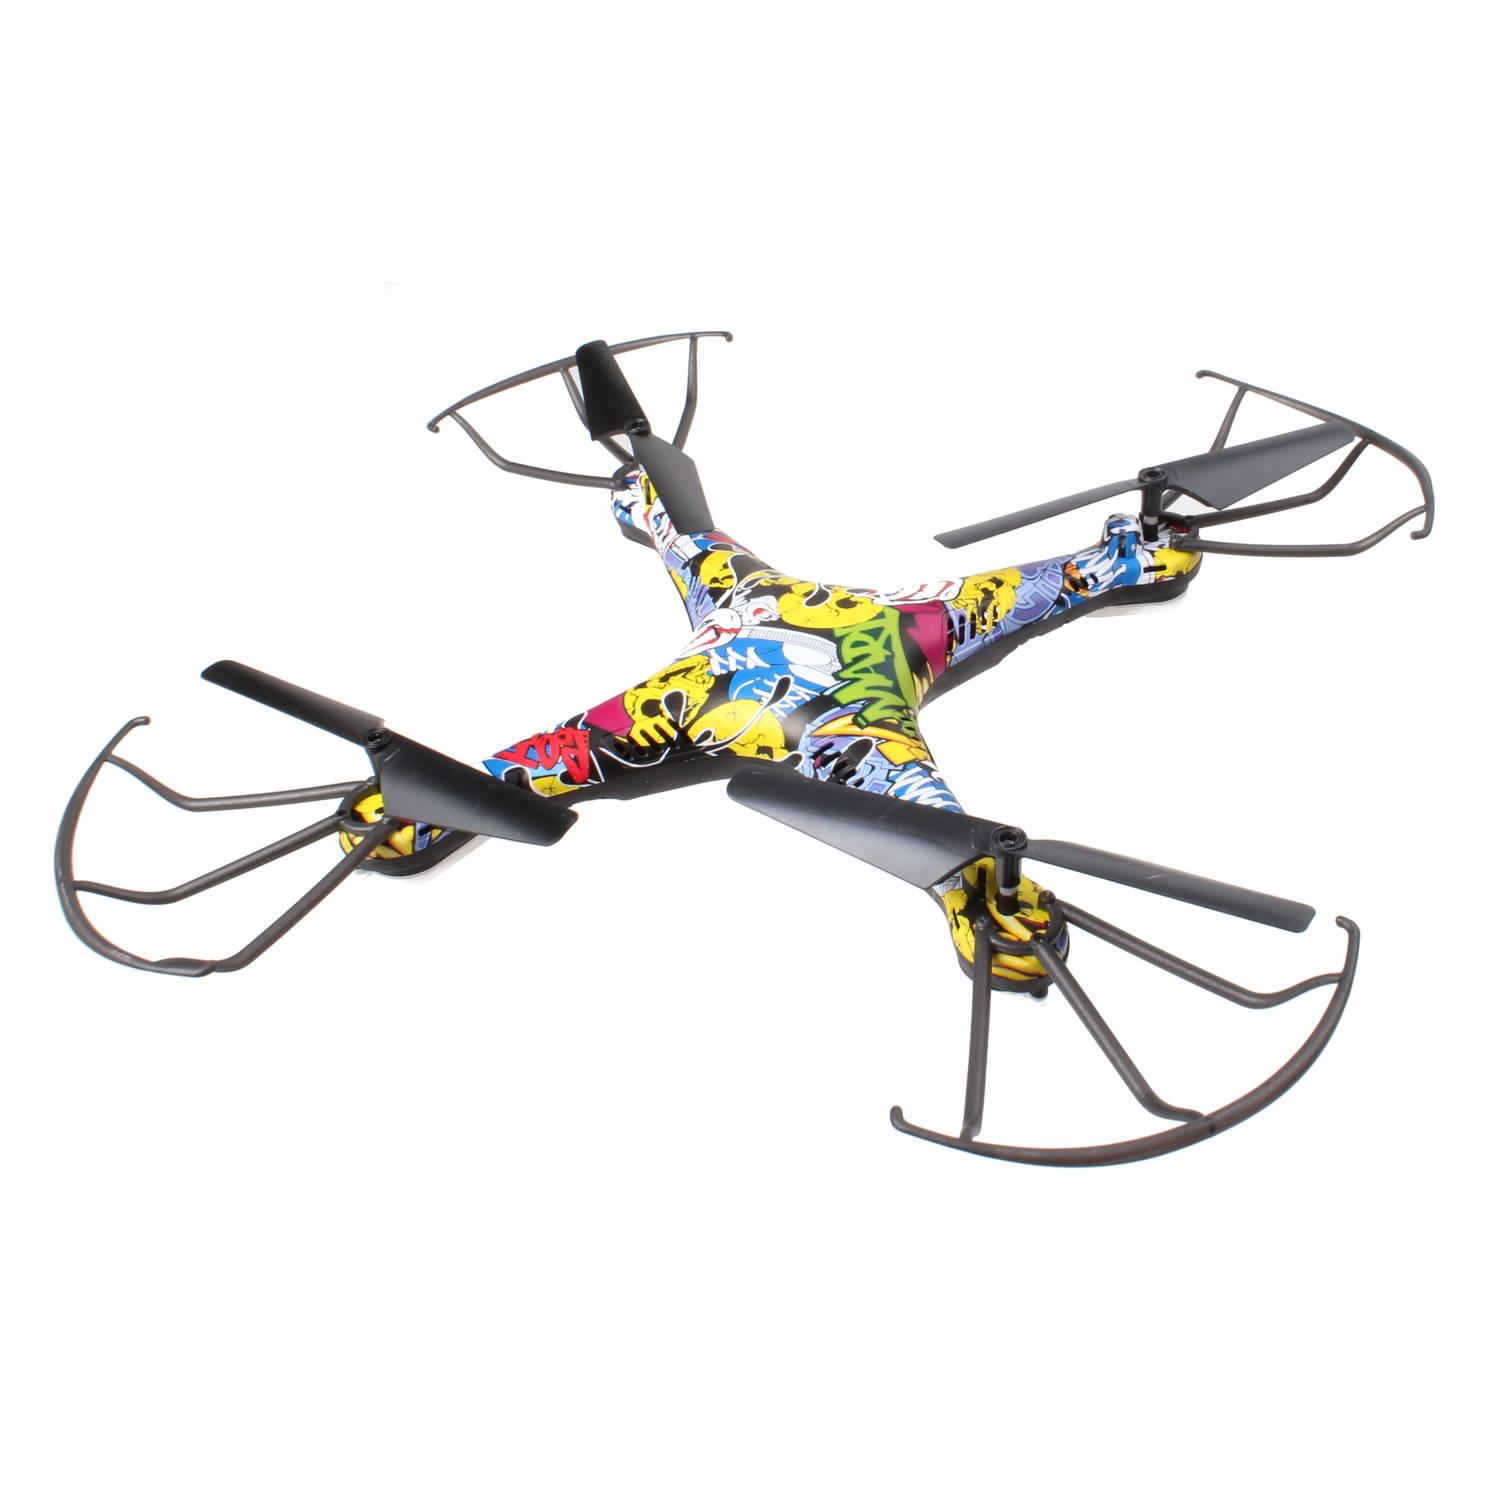 FPV drone met camera en wifi graffiti 28x28 cm